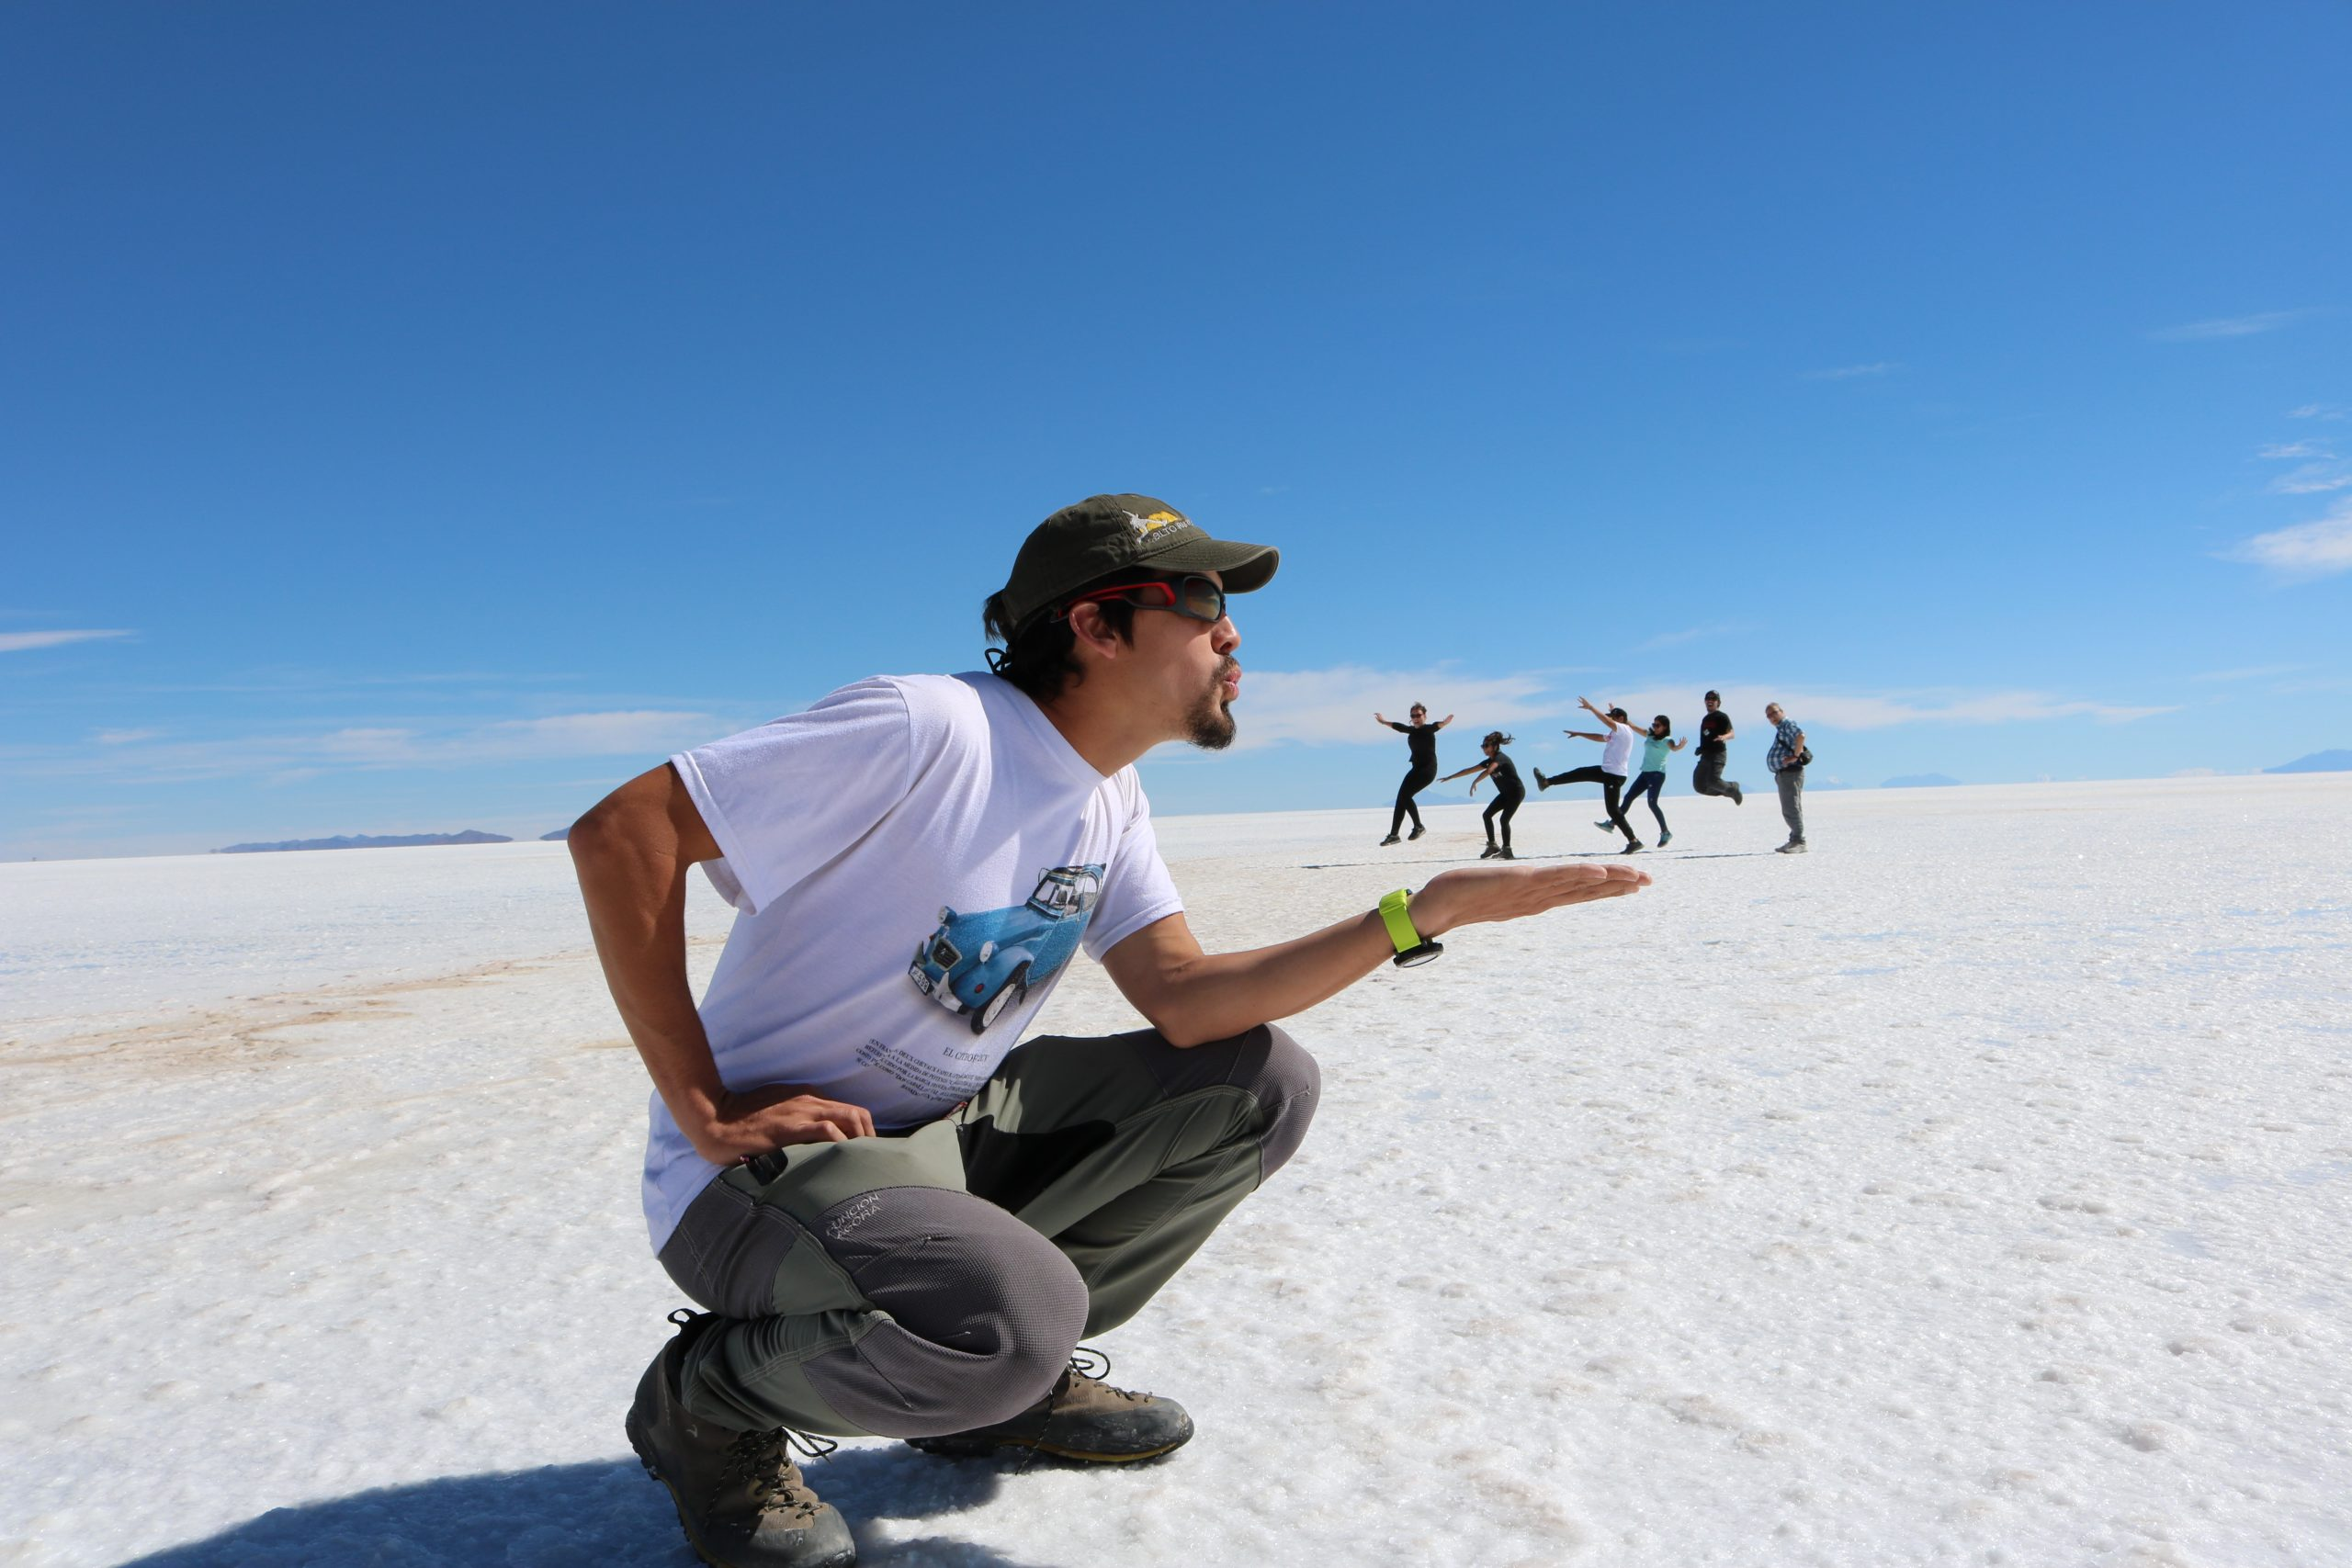 Uyuni Salt Flat perspective or fun photo